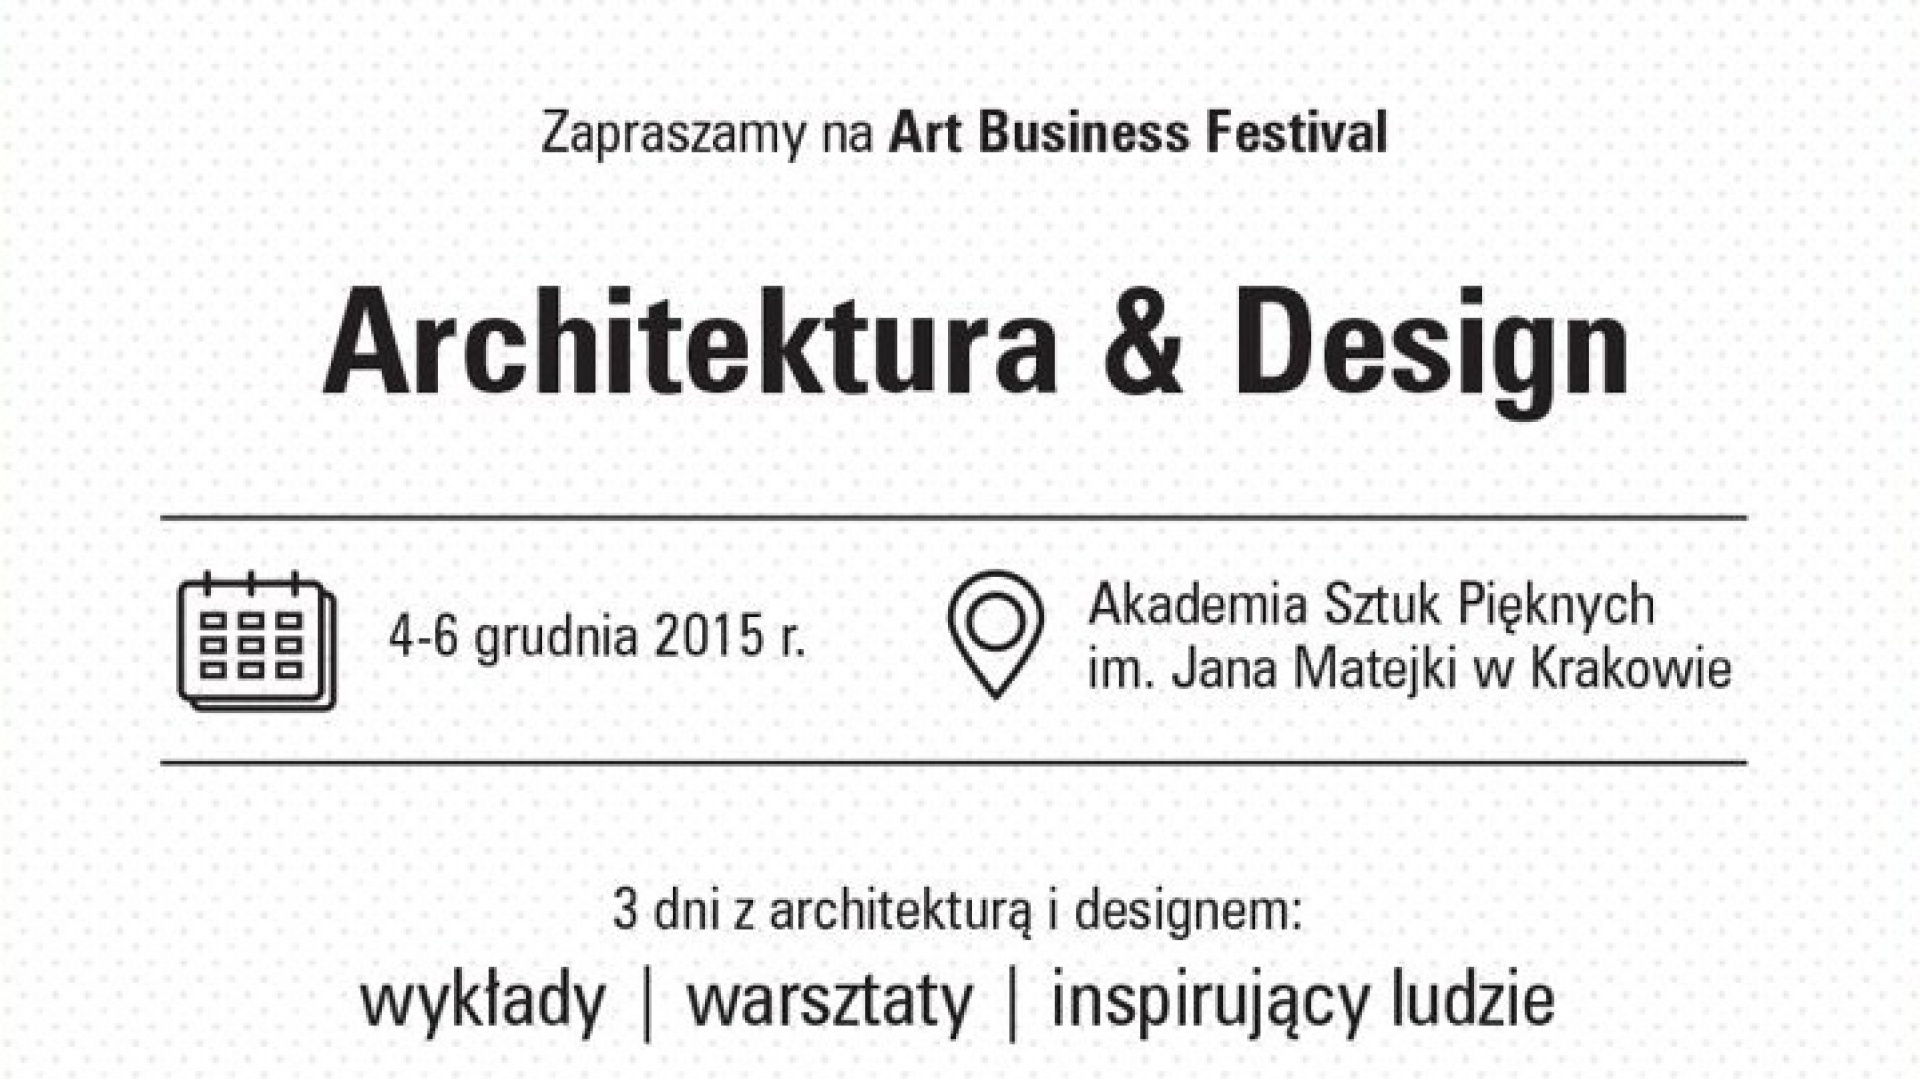 Art Business Festival. Fot. Plakat prasowy